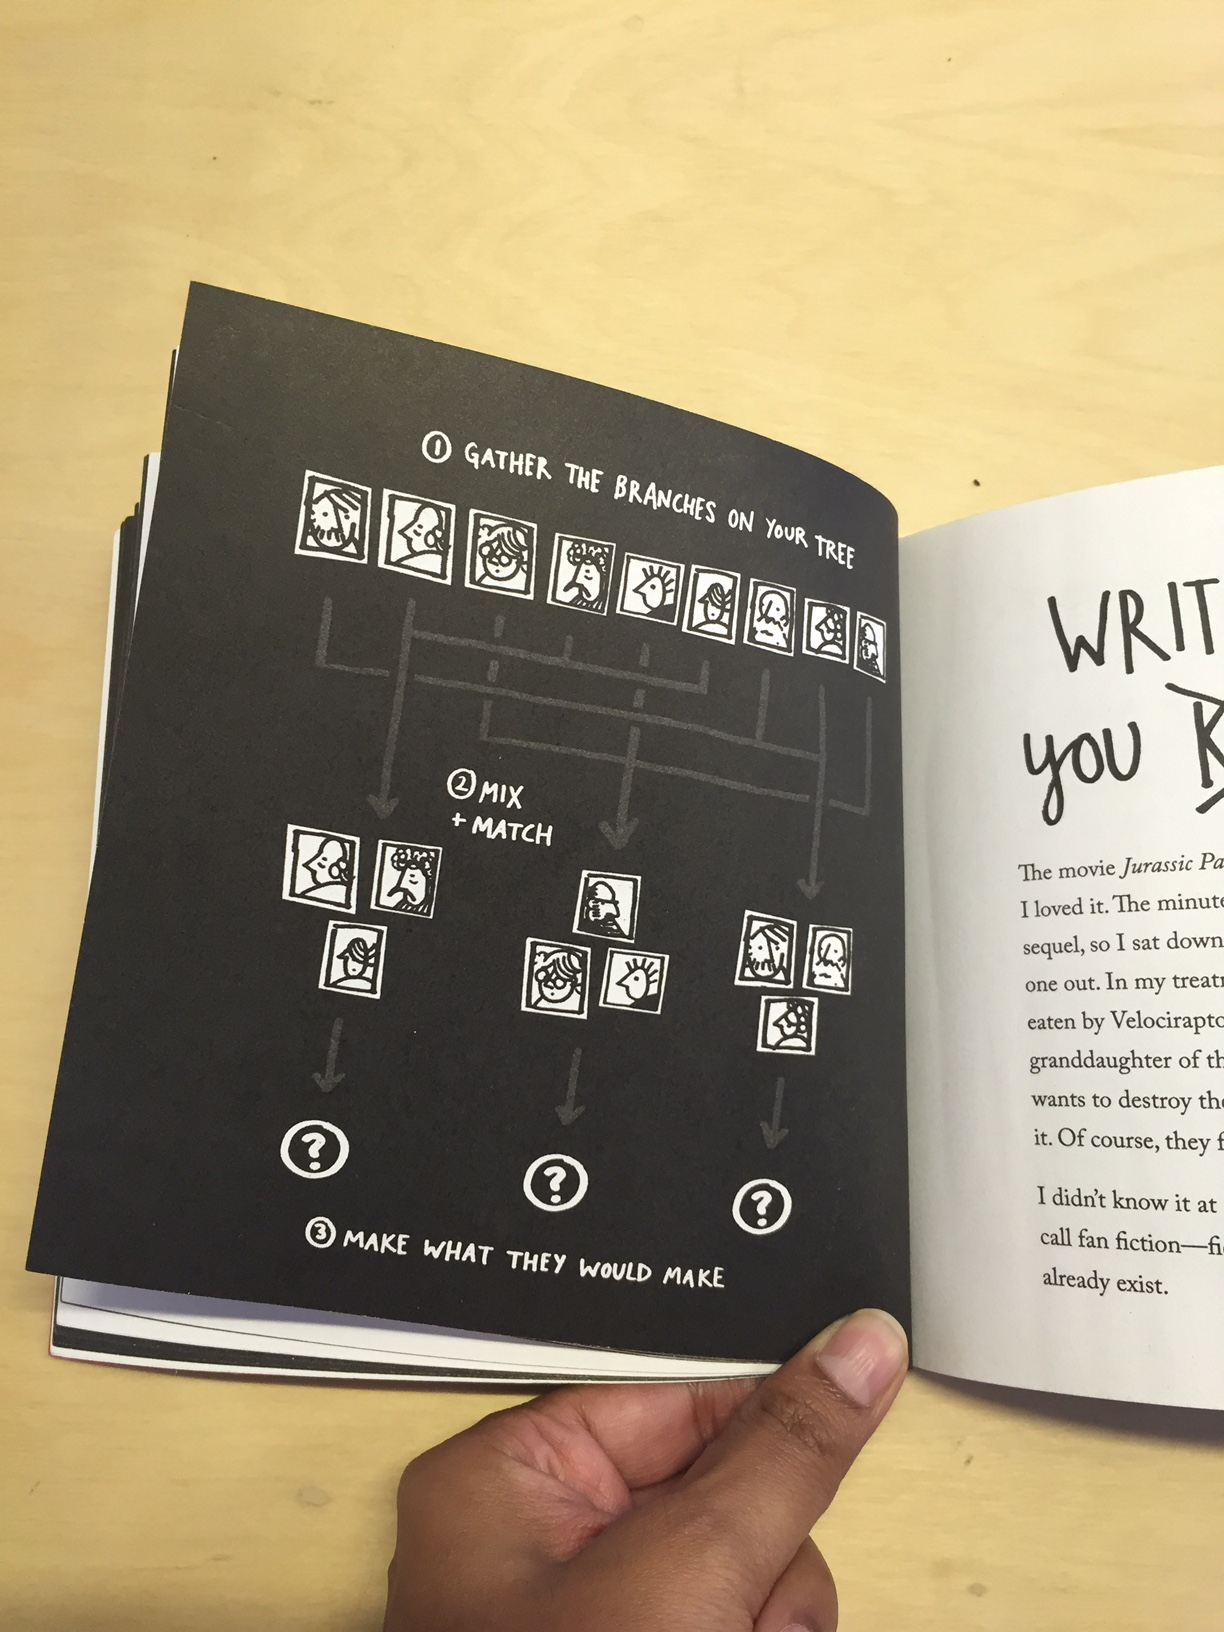 Kleon's sketch from the book.